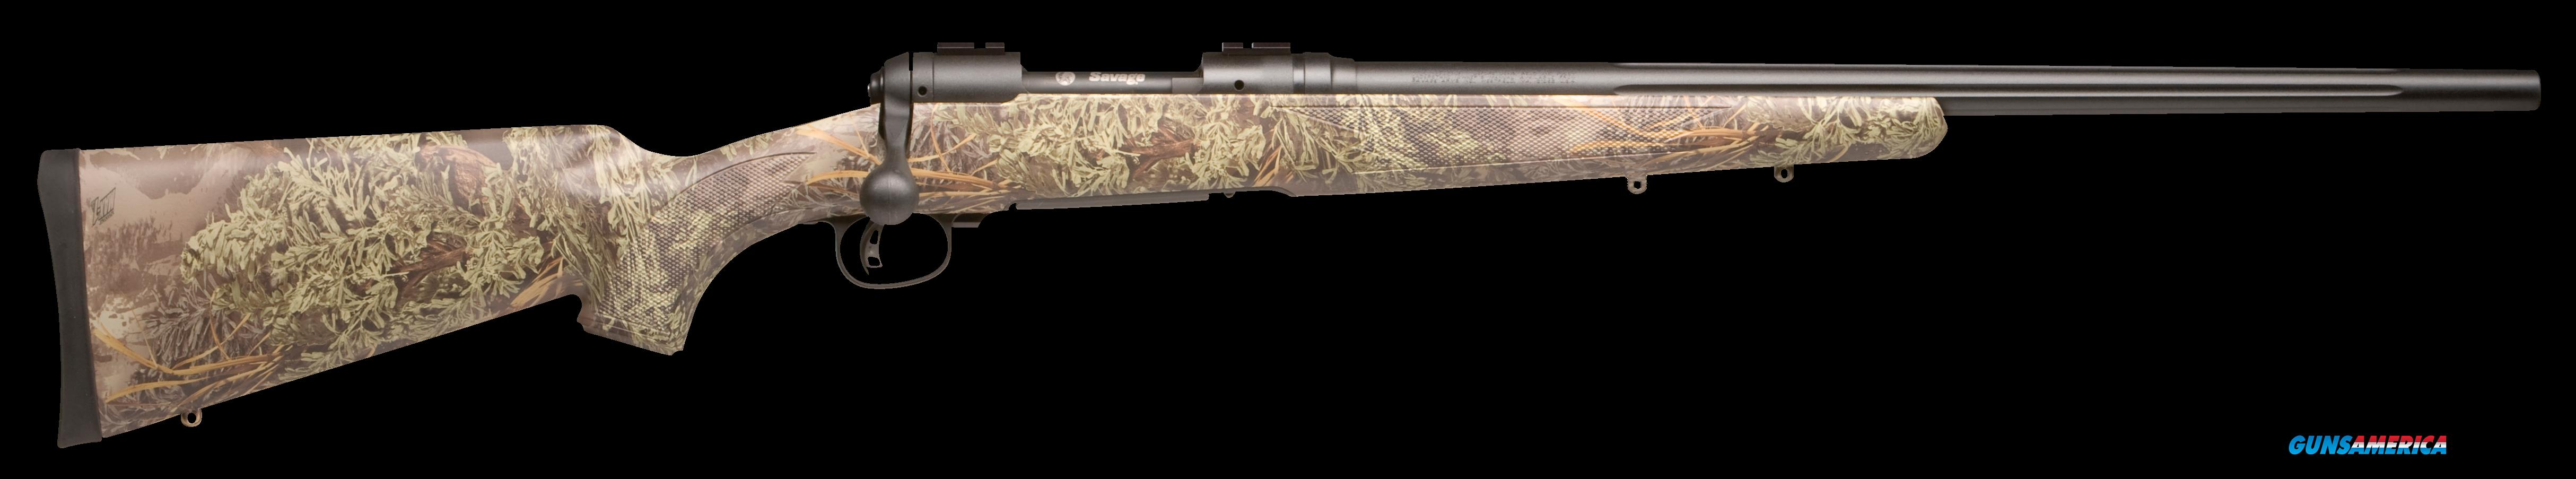 "Savage 18888 10/110 Predator Hunter Bolt 22-250 Rem 24"" 4+1 Accustock Realtree Max-1 Stk Black  Guns > Rifles > Savage Rifles > Accutrigger Models > Sporting"